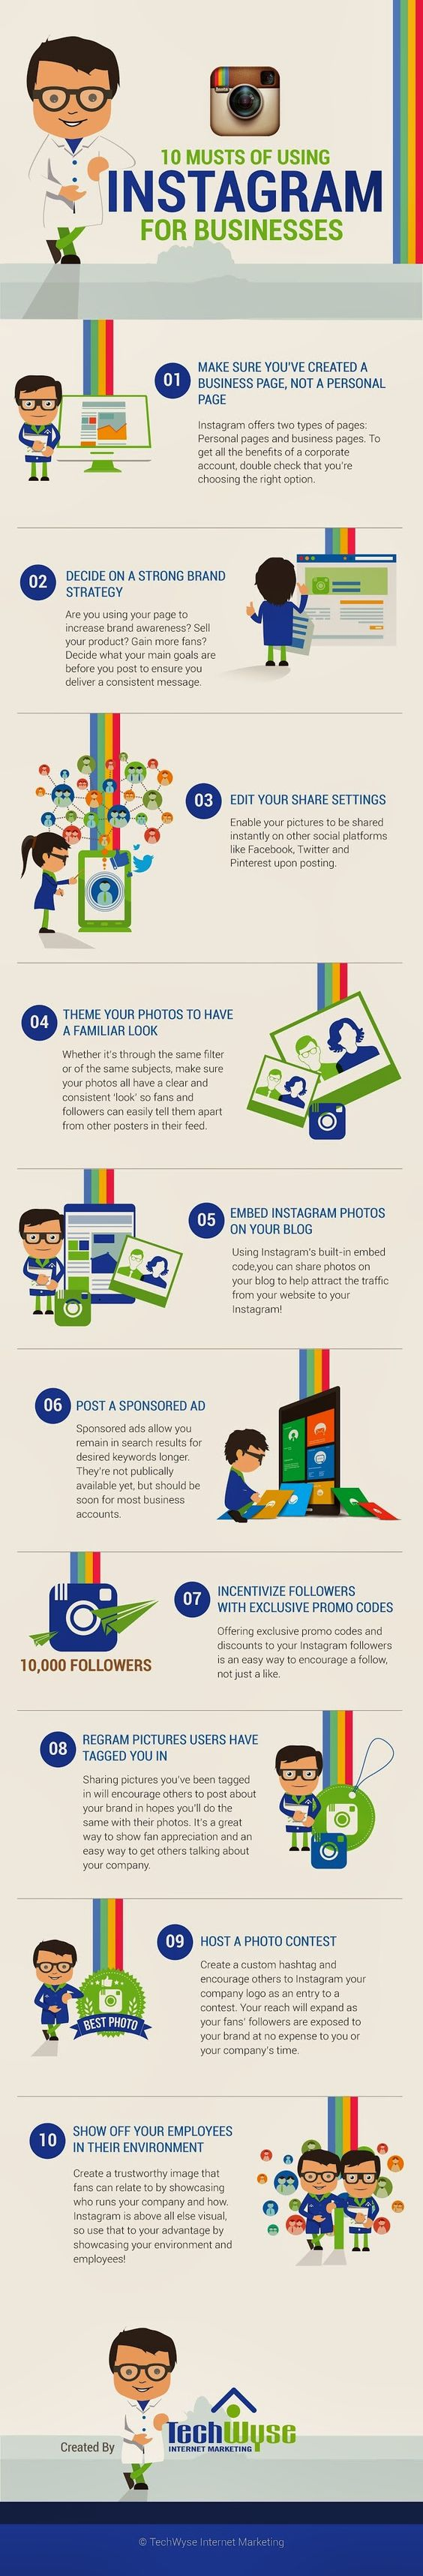 How To Catch Organic Traffic To eCommerce Websites With Social Media http://www.digitalinformationworld.com/2015/02/how-ecommerce-brands-can-increase-traffic-with-social-media.html #digitalmarketing #instagram #socialmedia